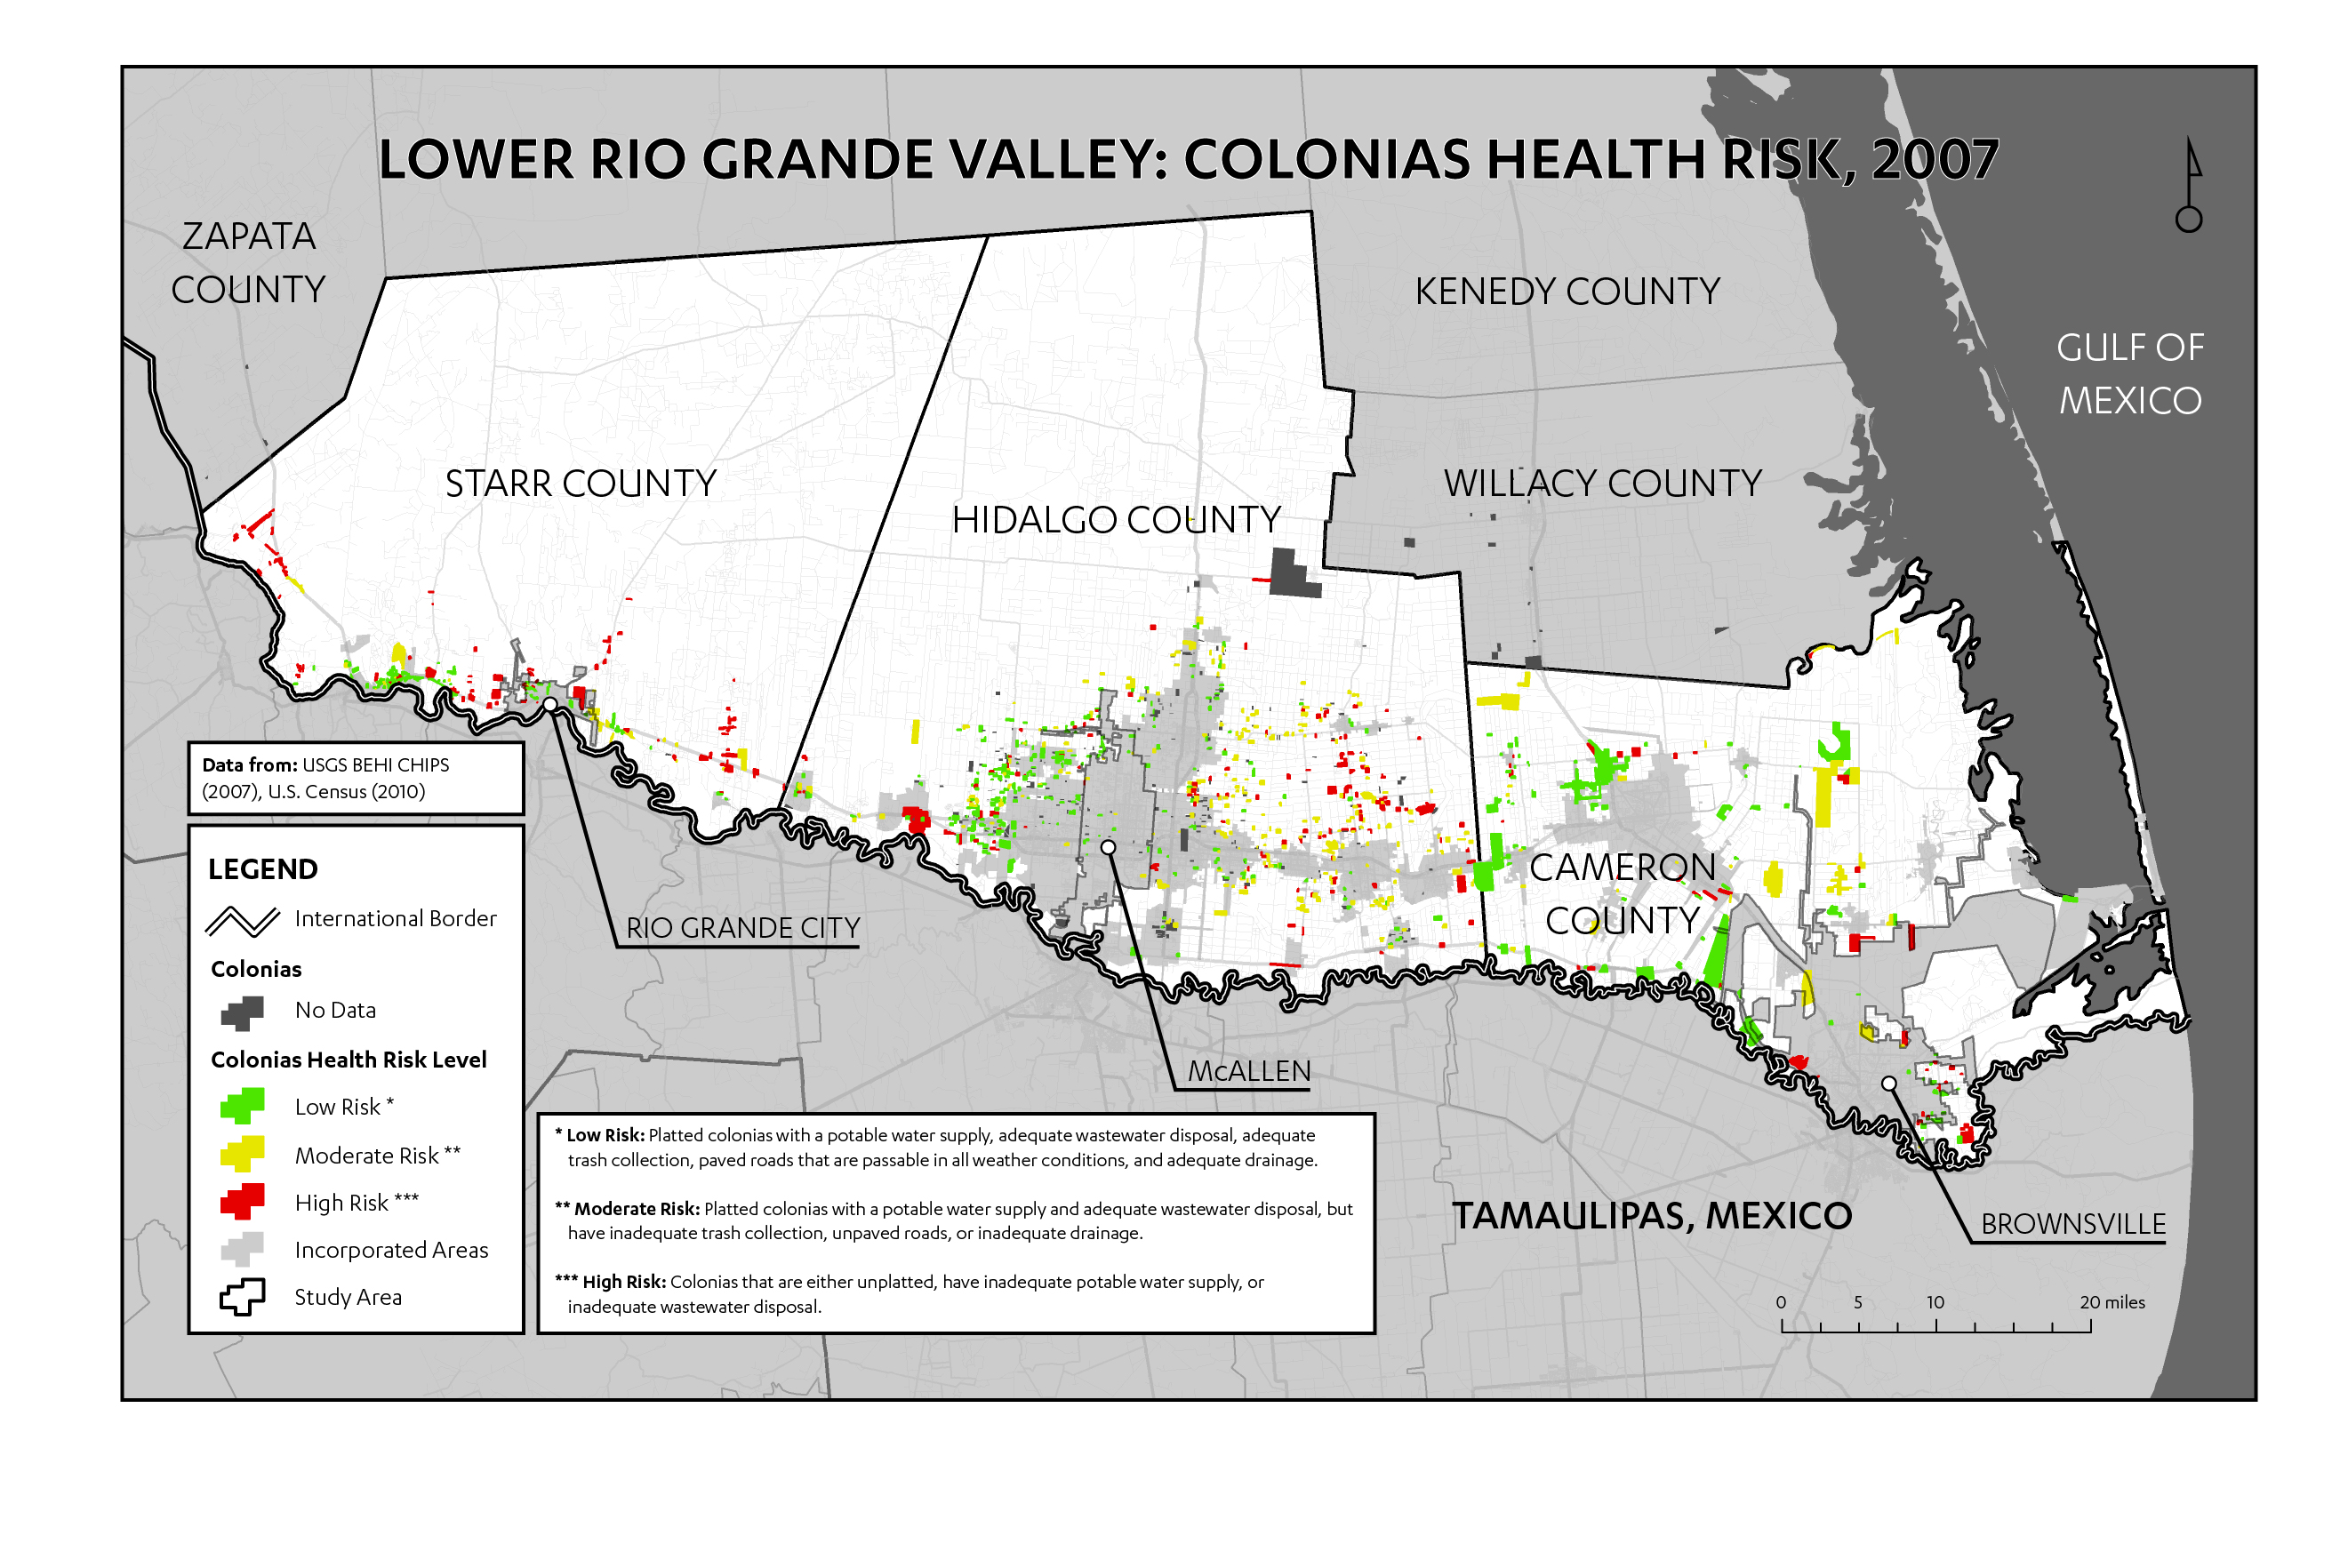 "Figure 6: Map of health concerns in Lower Rio Grande Valley colonias (data from CHIPS 2007). ""Health risk"" represents the combined effects of several factors, including wastewater disposal (as indicated by the presence of cesspools), potable water supply, road surface, flood susceptibility by lot and roads, and whether lots have been legally subdivided (platted). While the colonias immediately west of McAllen appear to have low health risk, the rest of the region appears less homogenous, suggesting that services may be unevenly distributed. Nonprofit leaders note that such data sets do not factor in other environmental health risks, such as polluted lands and poor air quality."